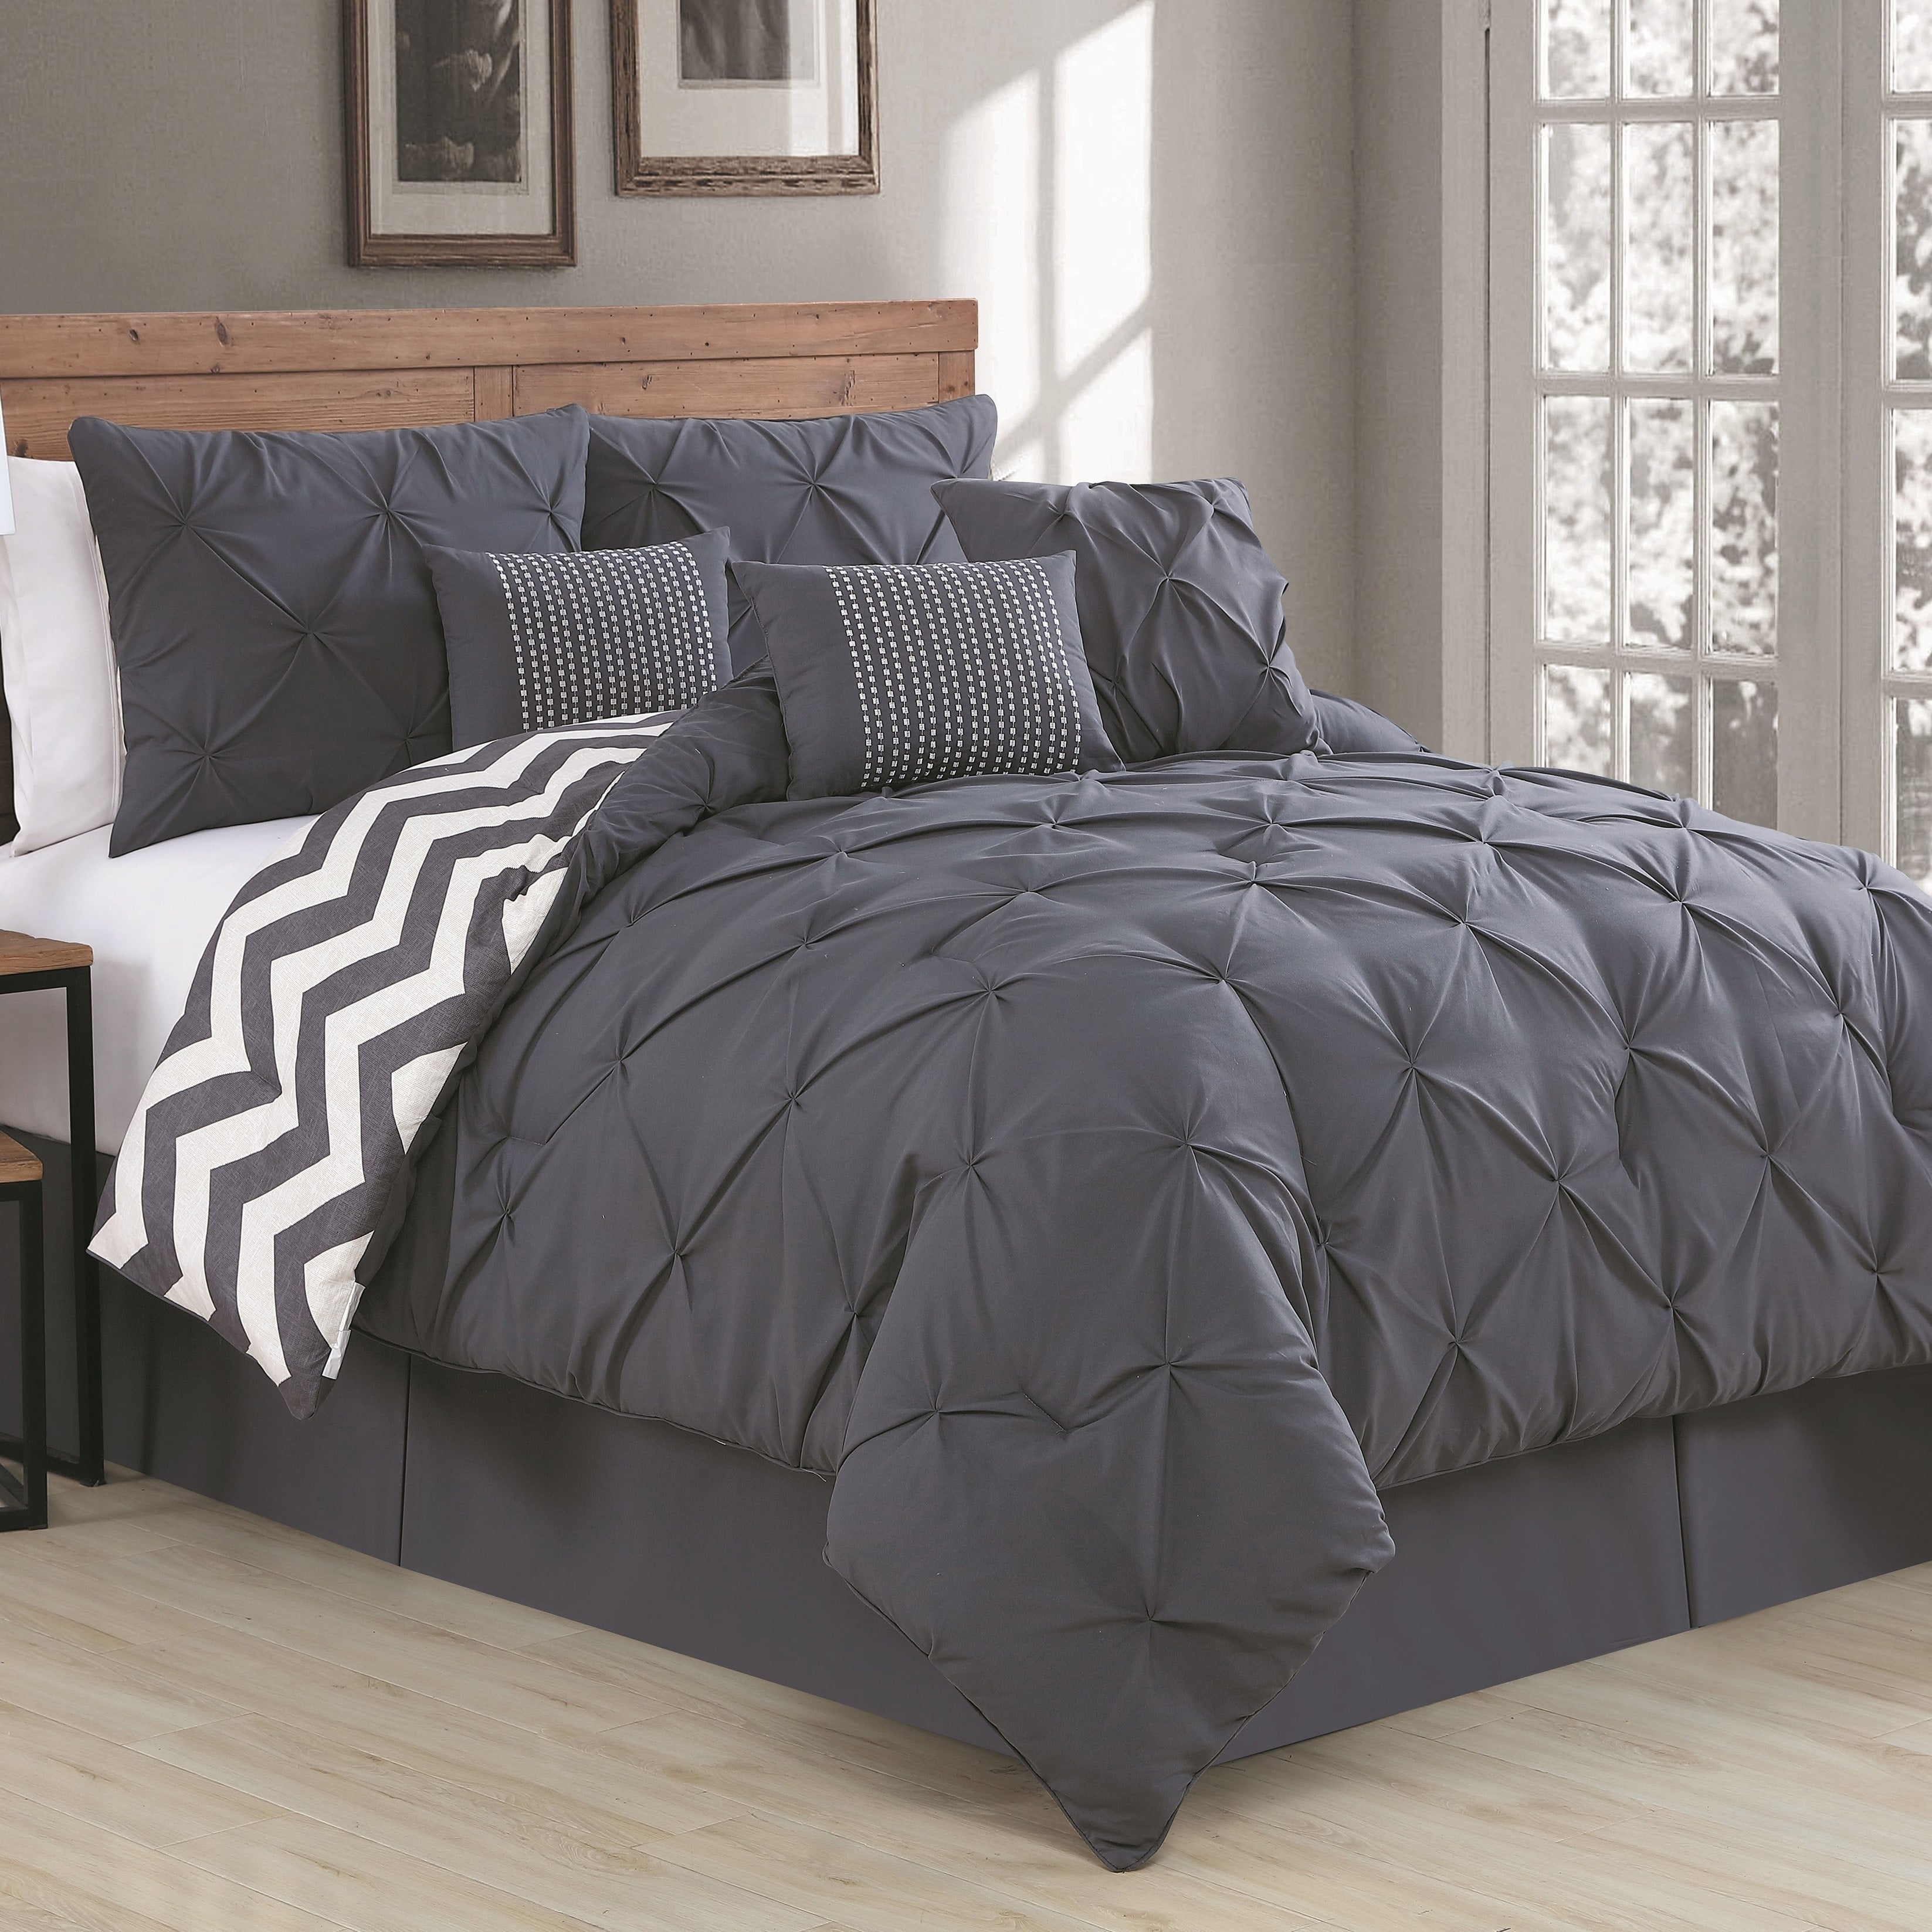 foot face latest bedding sets gwyneth reversible pale set products piece blue waterford comforter